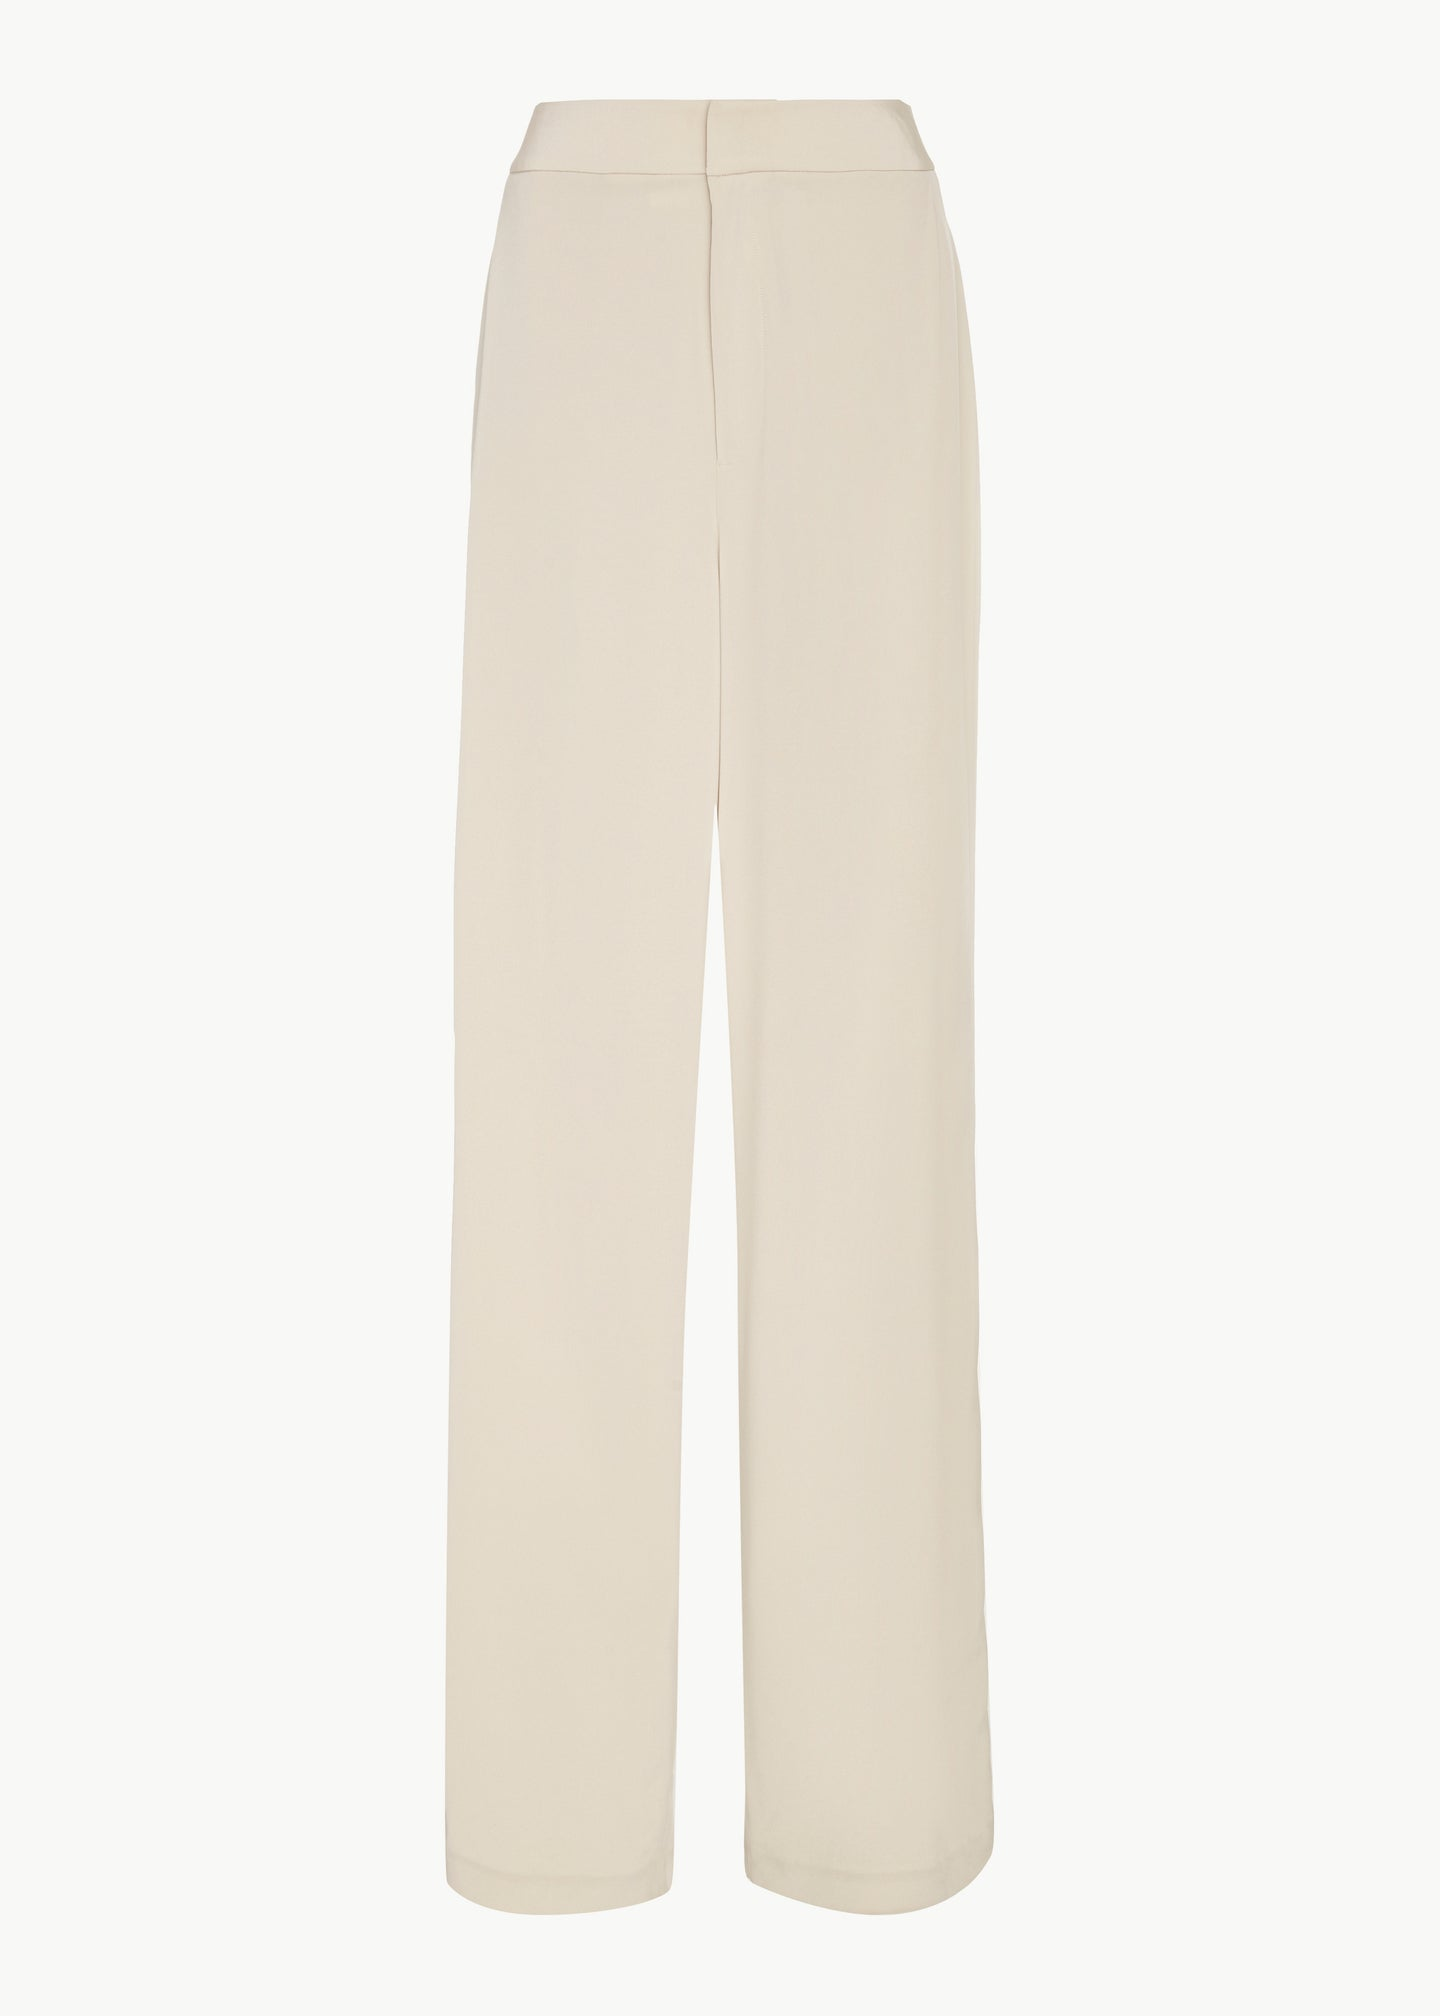 Relaxed Trouser in Stretch Crepe - Champagne - Co Collections